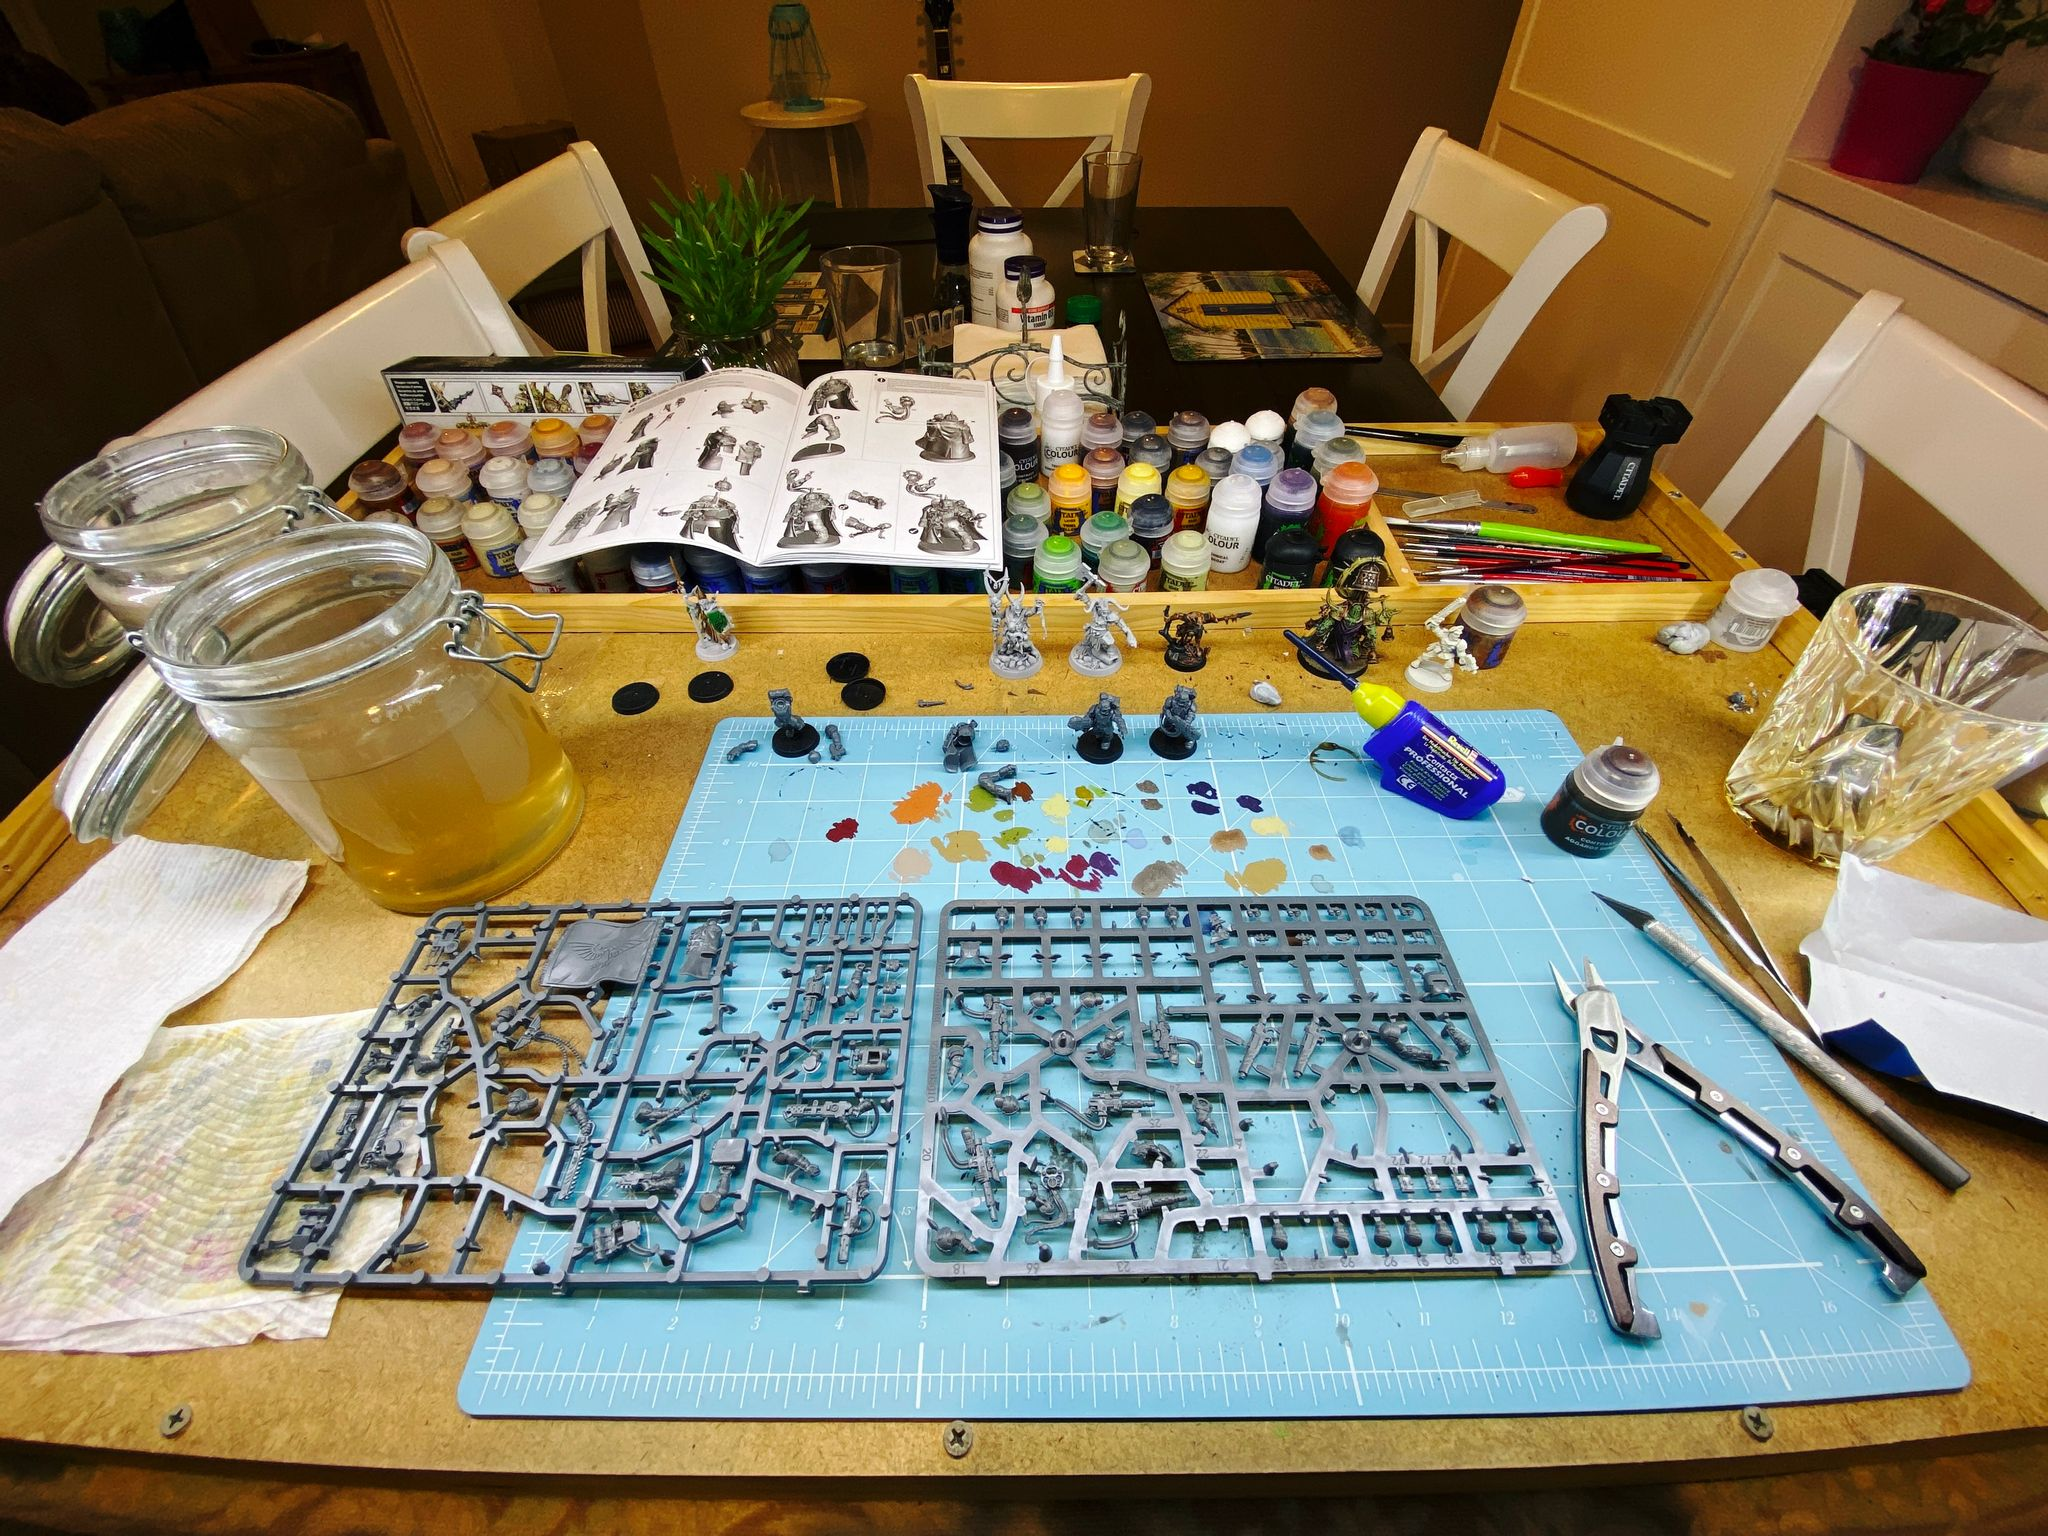 A photo of my painting table with several miniatures in various states of assembly, and two sprues with even more bits still on them, plus an empty glass that had Galliano Ristretto in it.